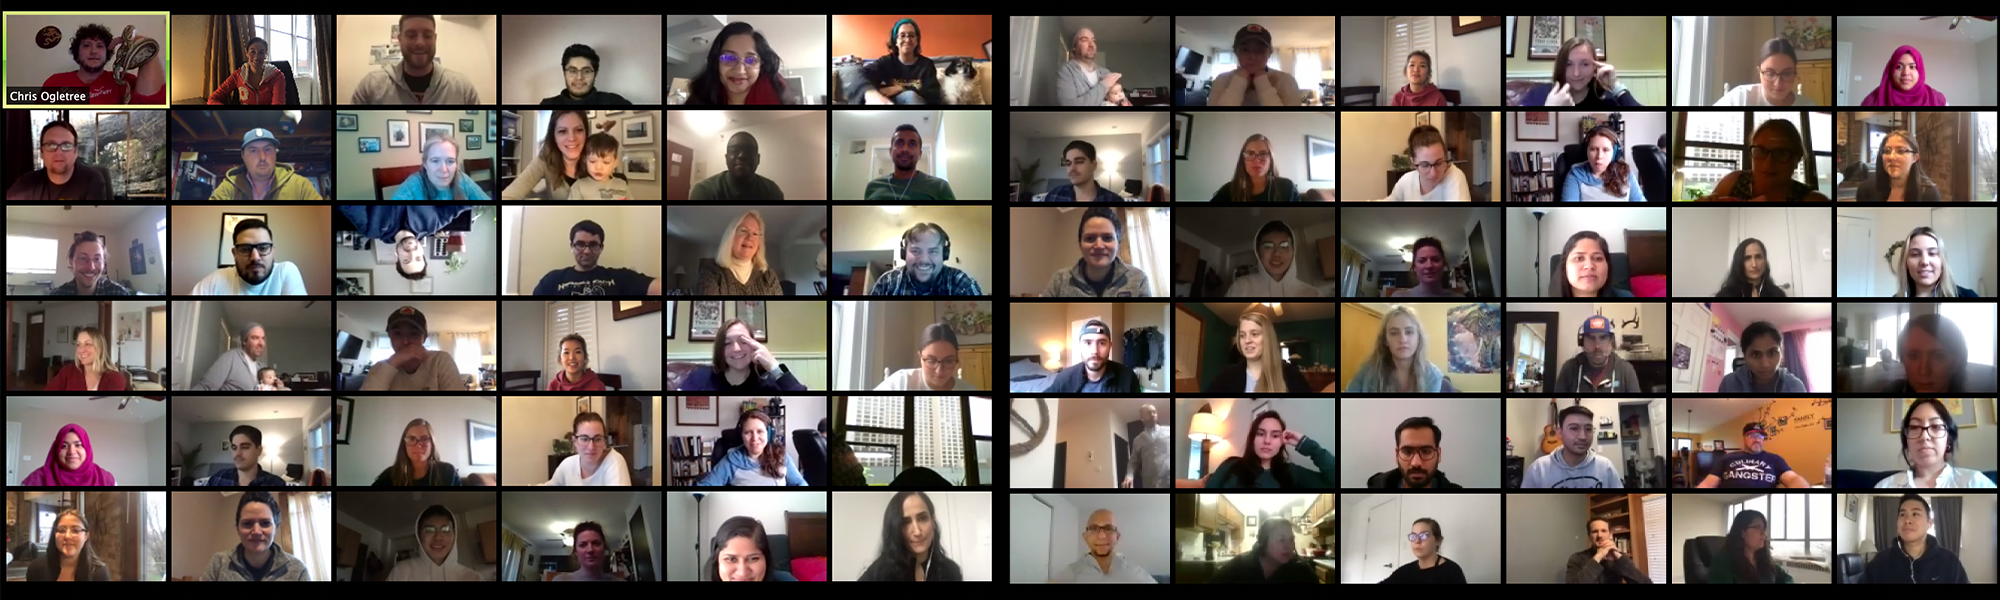 Full company remote meeting 2